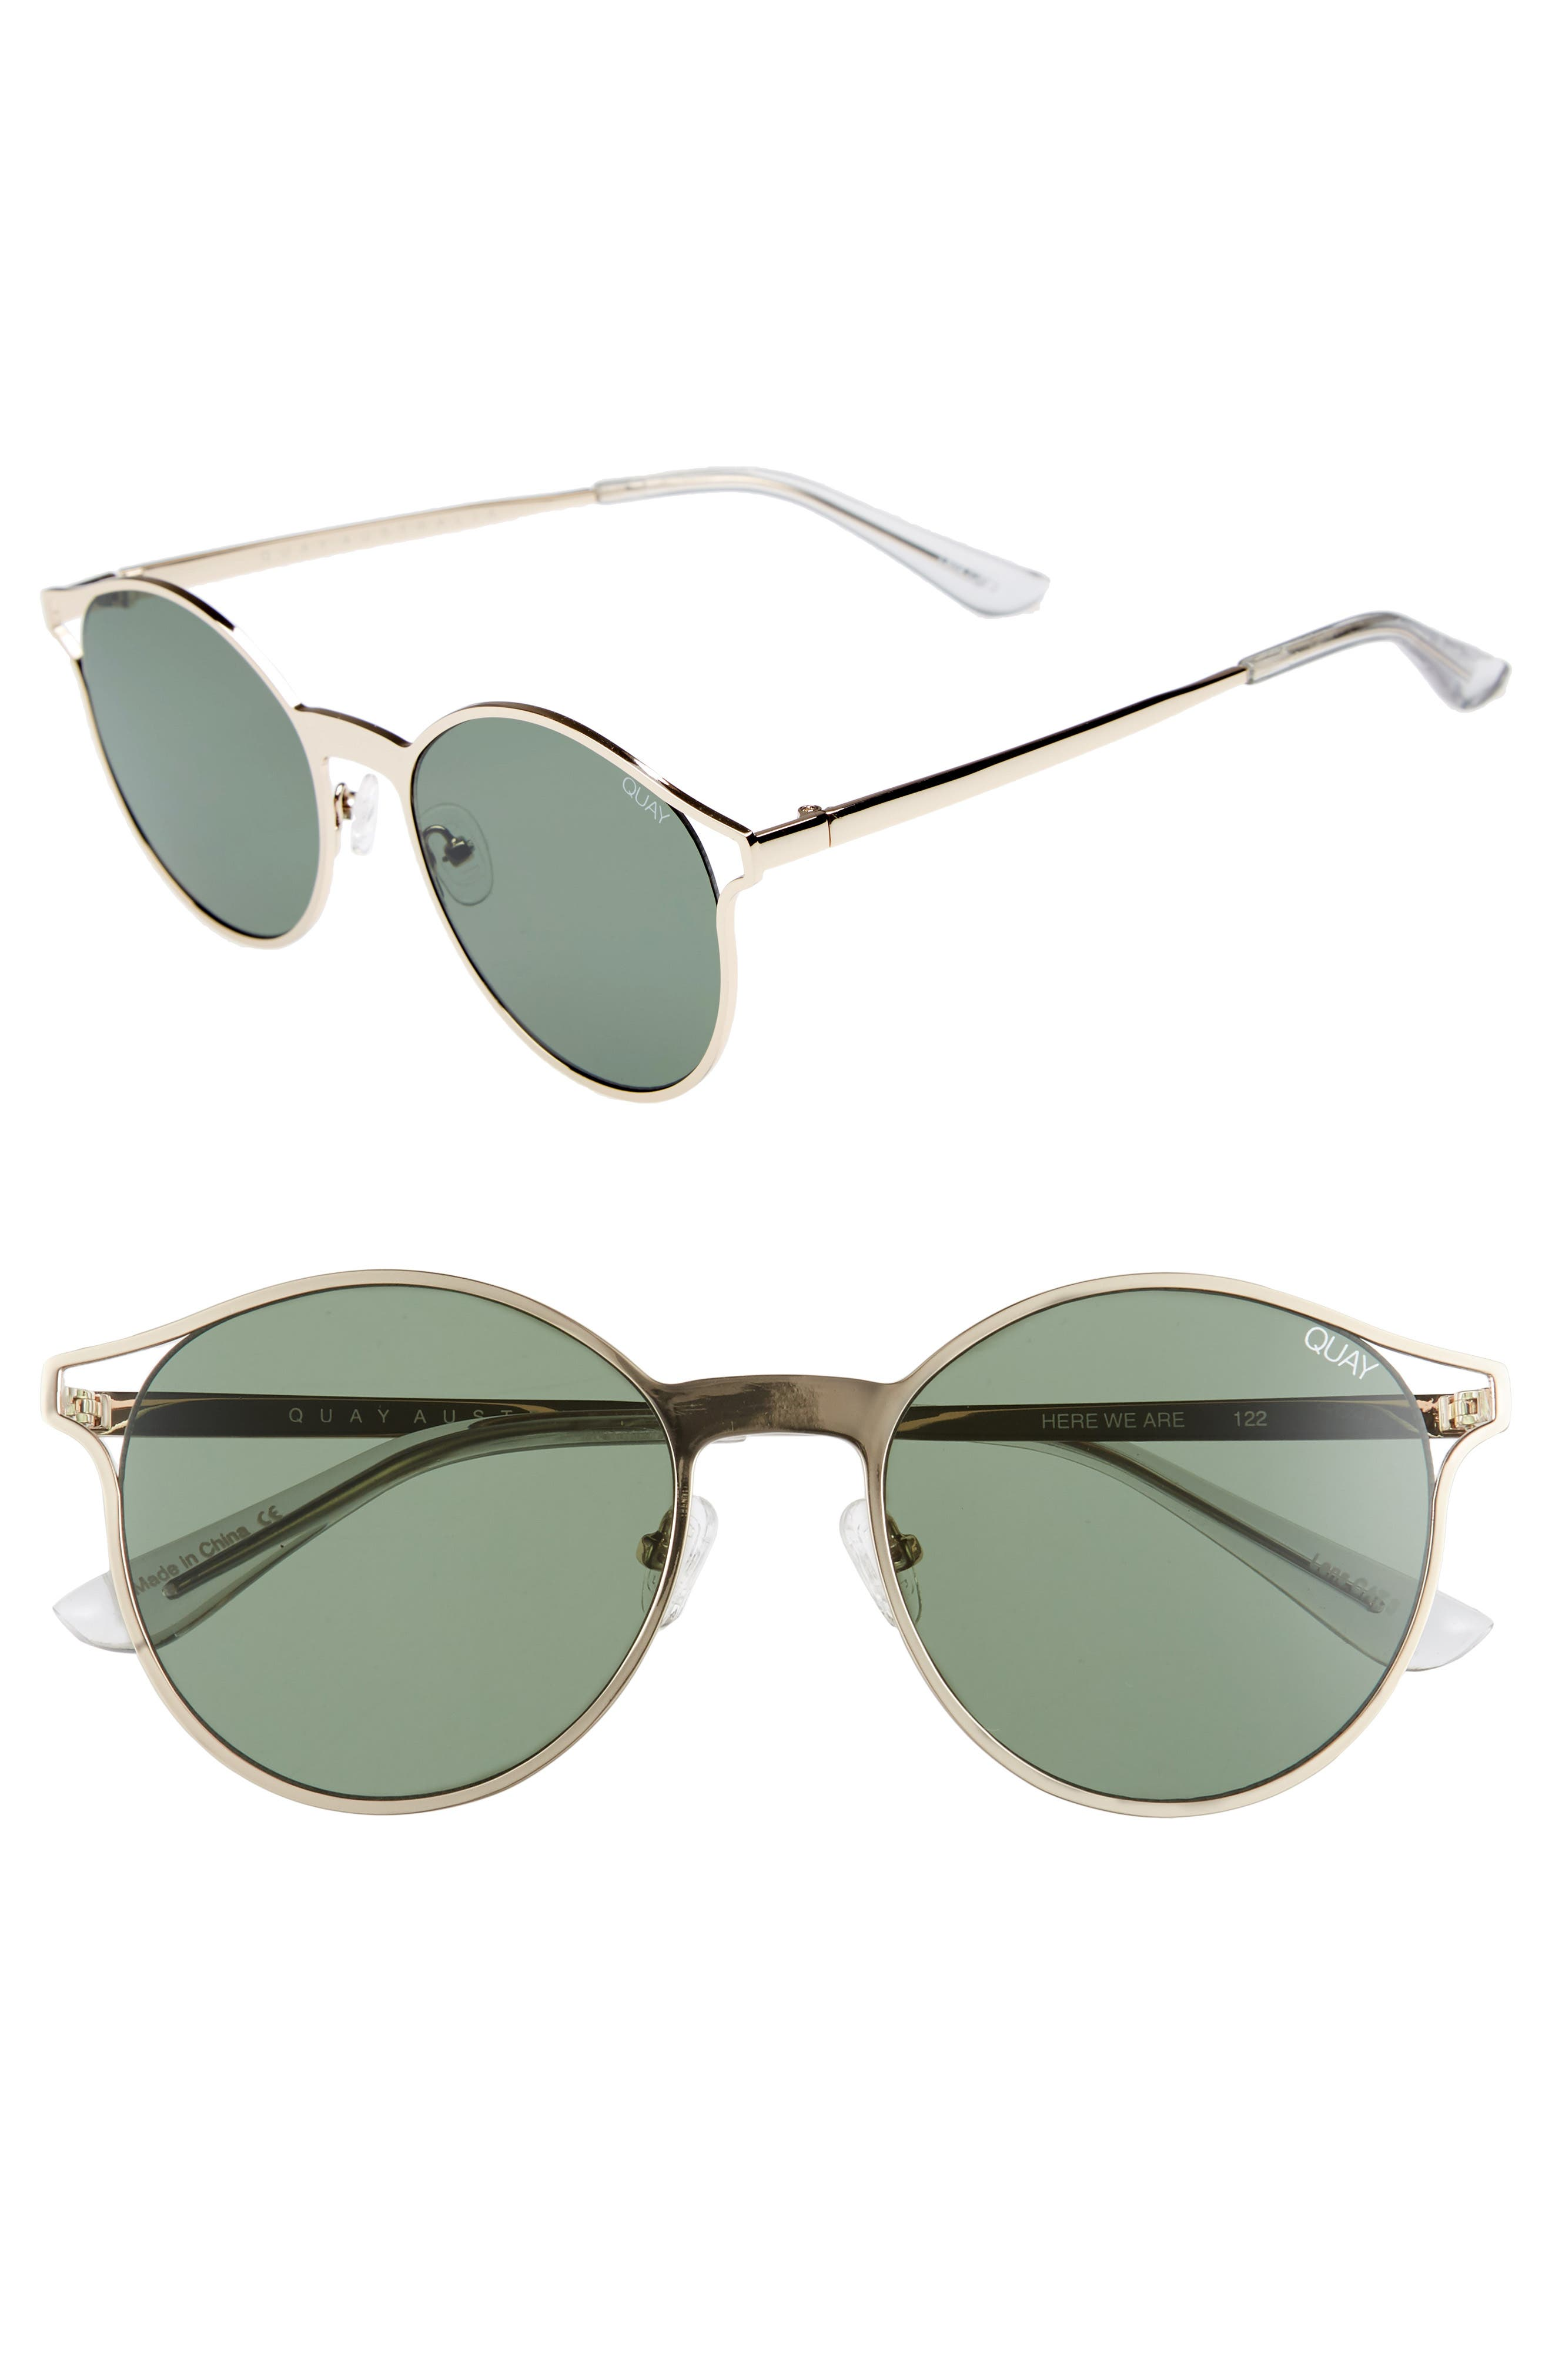 Here We Are 53mm Round Sunglasses,                             Main thumbnail 1, color,                             Gold/ Green